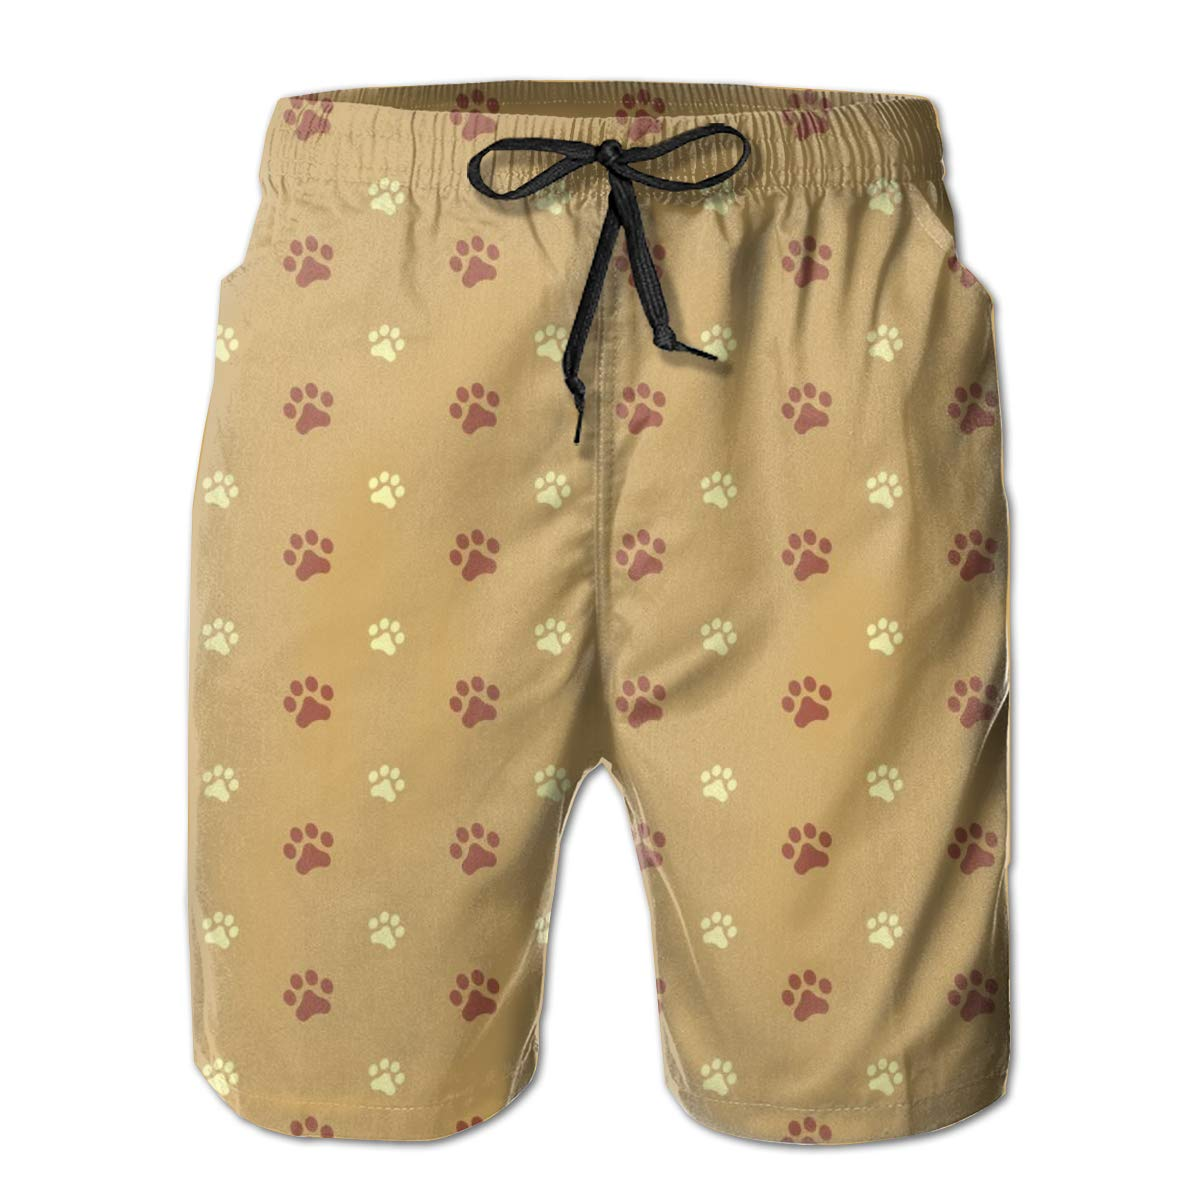 Mens Beach Shorts Quick Dry Paws Summer Holiday Mesh Lining Swimwear Board Shorts with Pockets